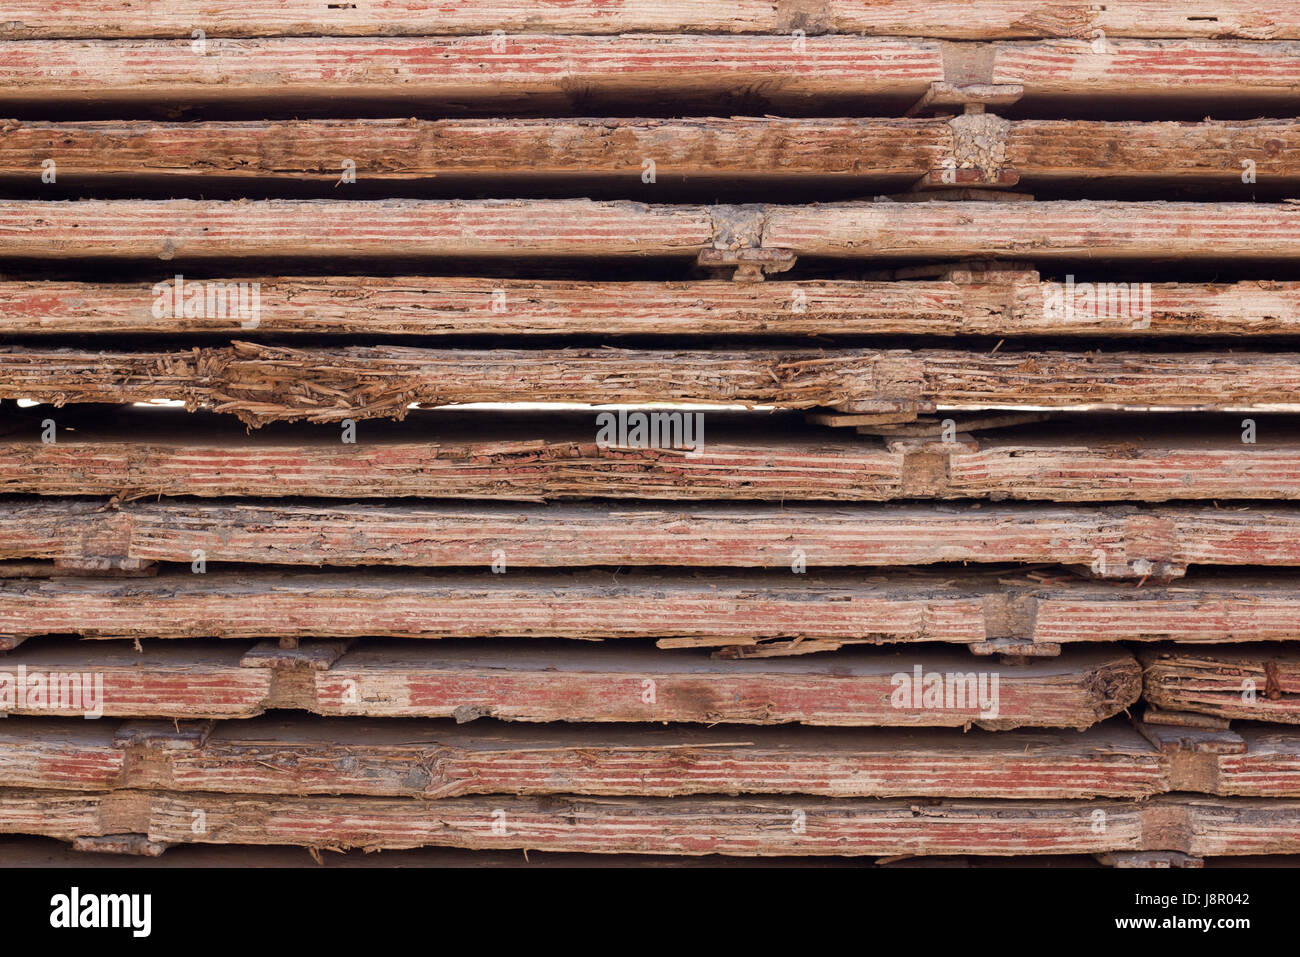 concrete, stacked, boards, old, backdrop, background, make up, form, board, Stock Photo